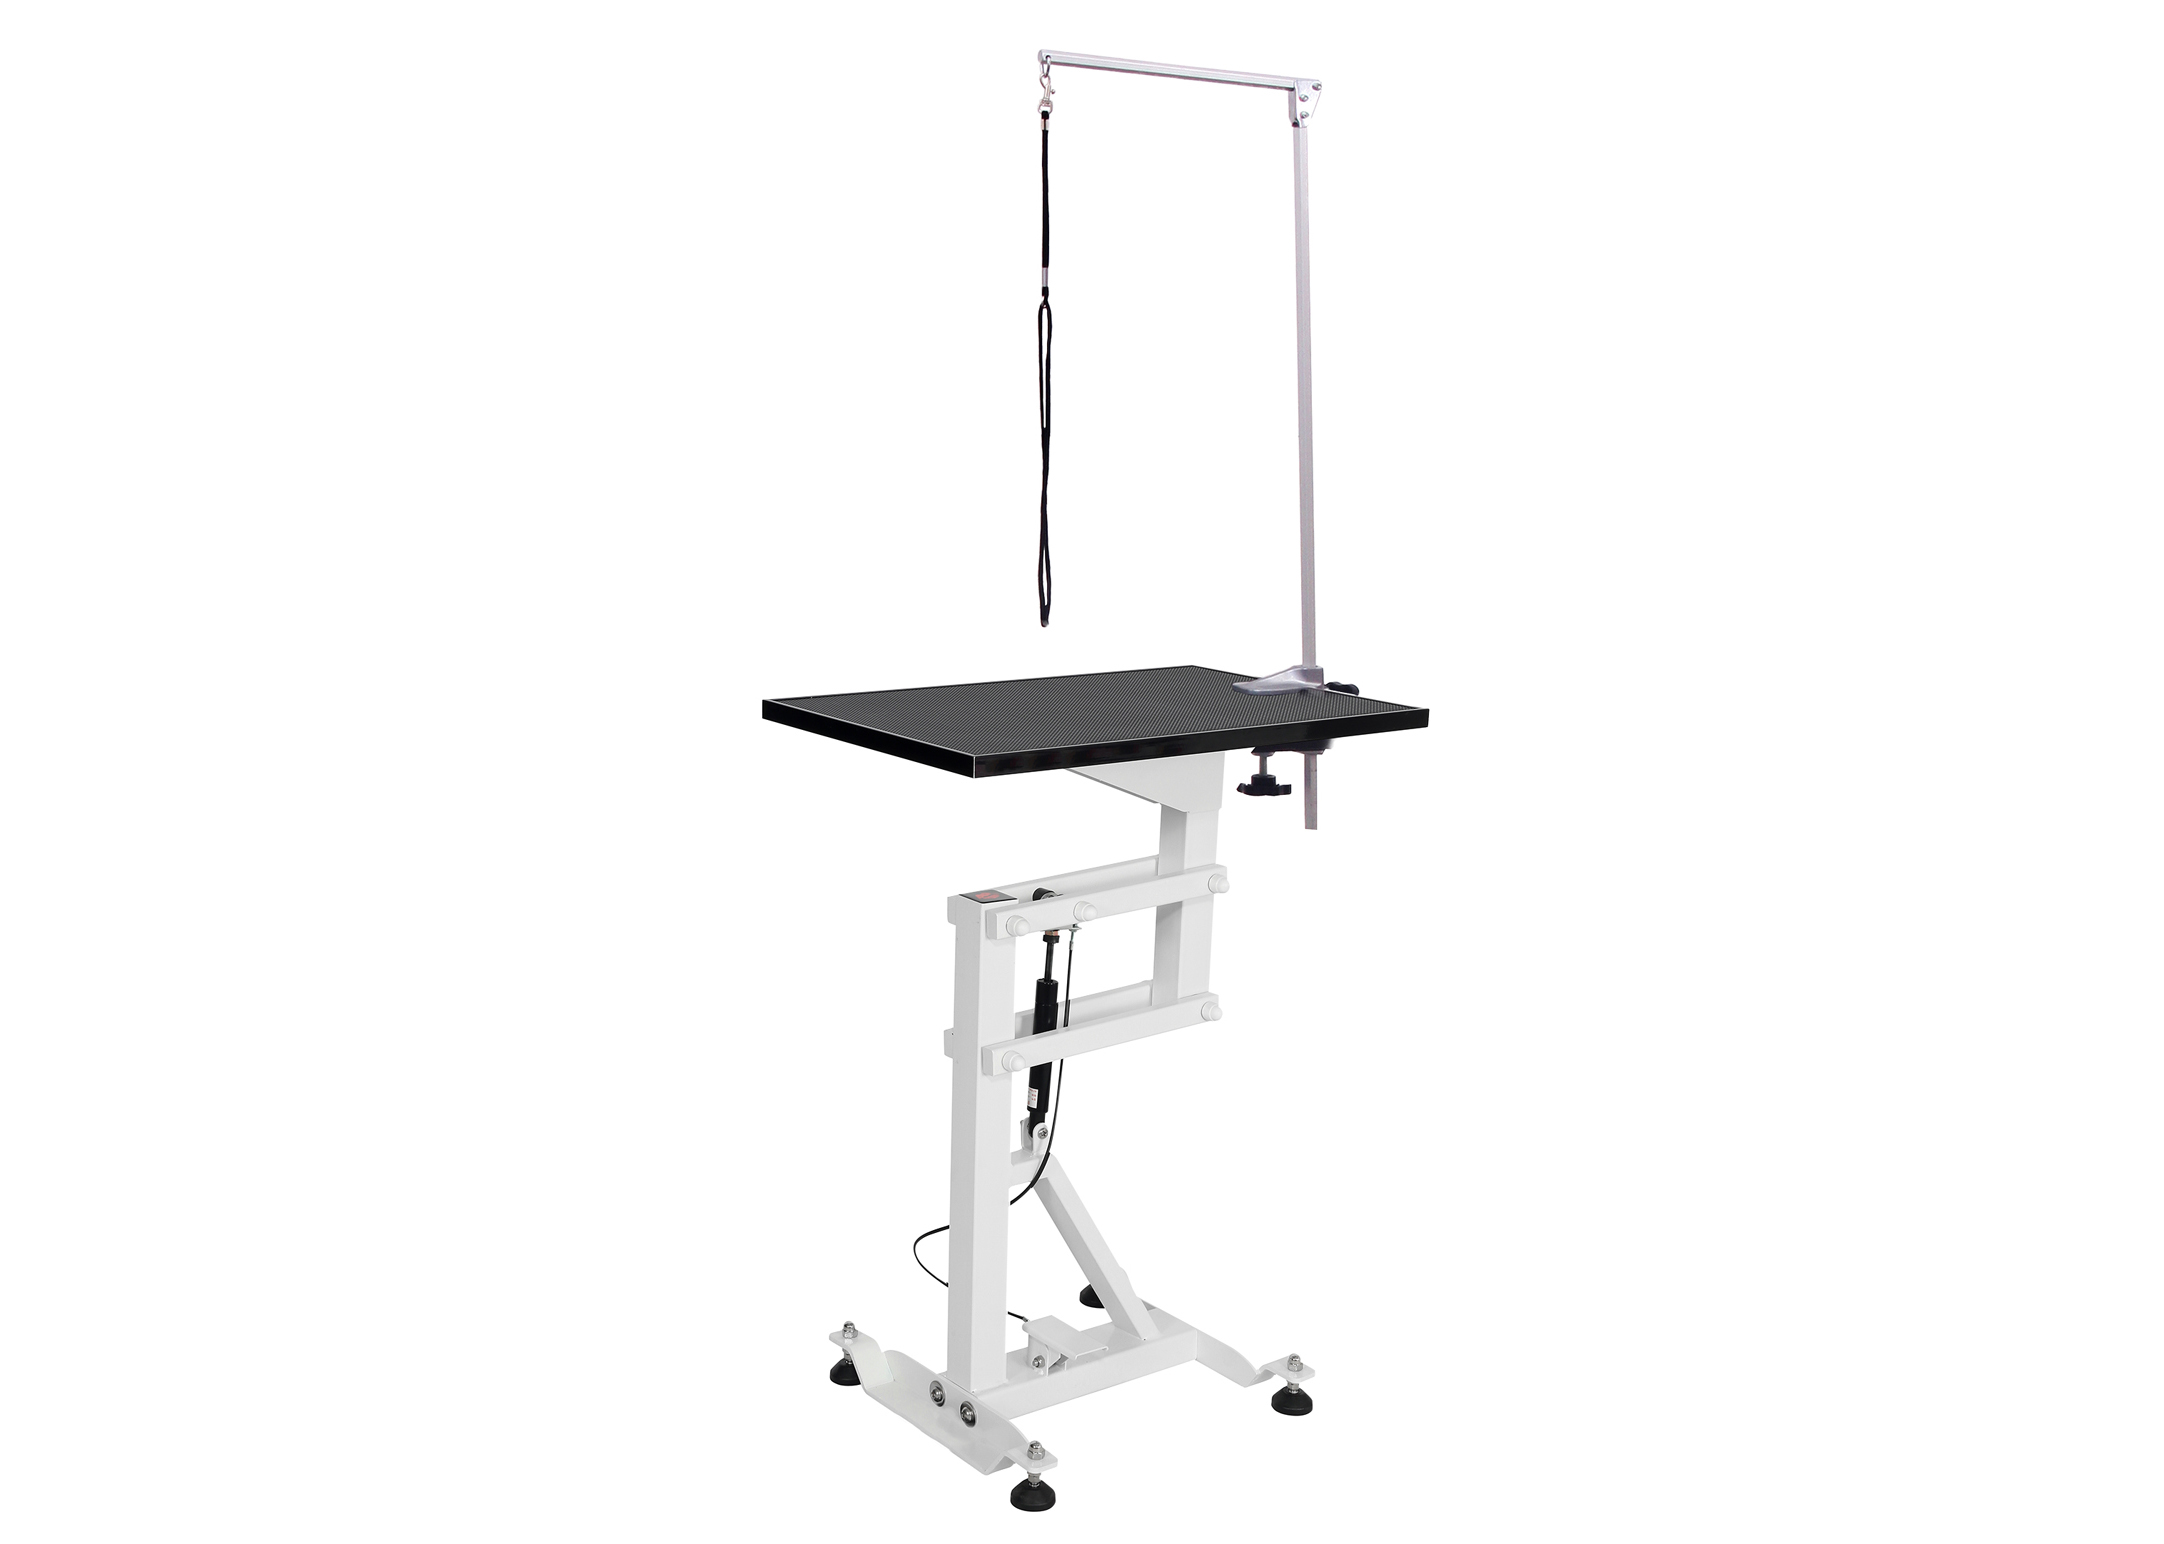 Groom-X Compact Air Lift Grooming Table Rectangular 60x40cmx80-120cmh with control post